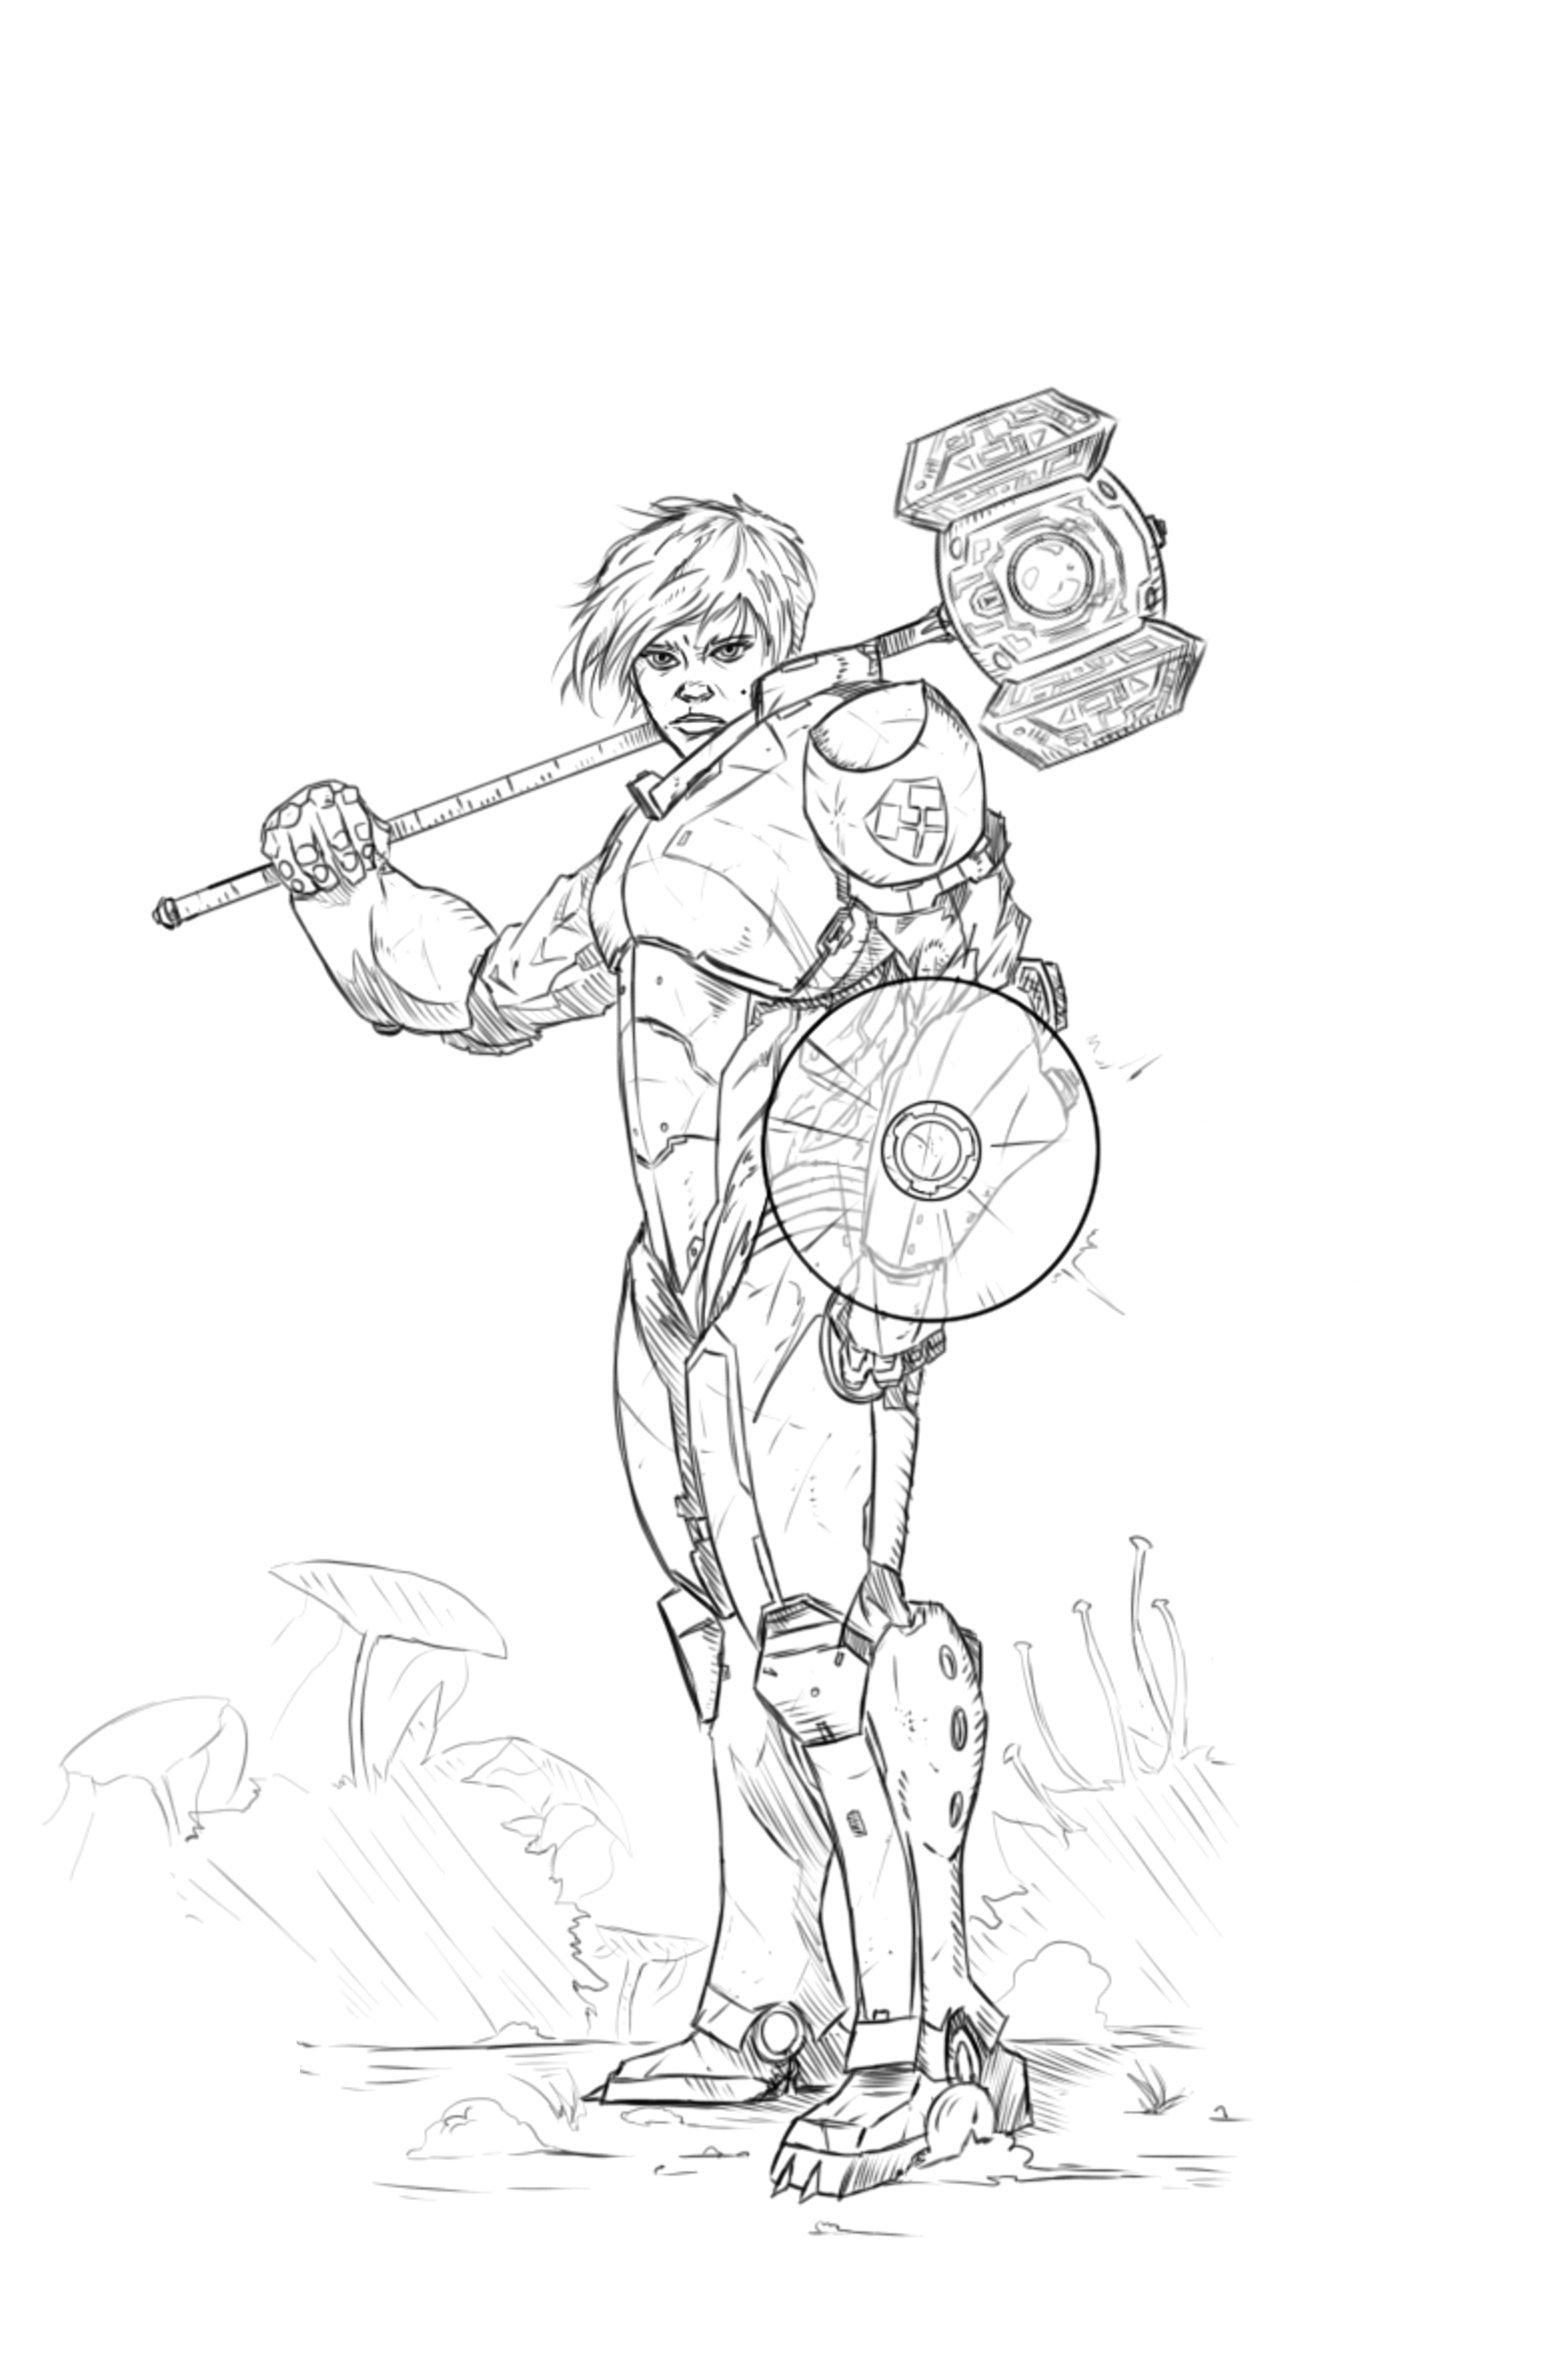 Captain Thorne - The Power Warden. Melee DPSers of the Warden Corps